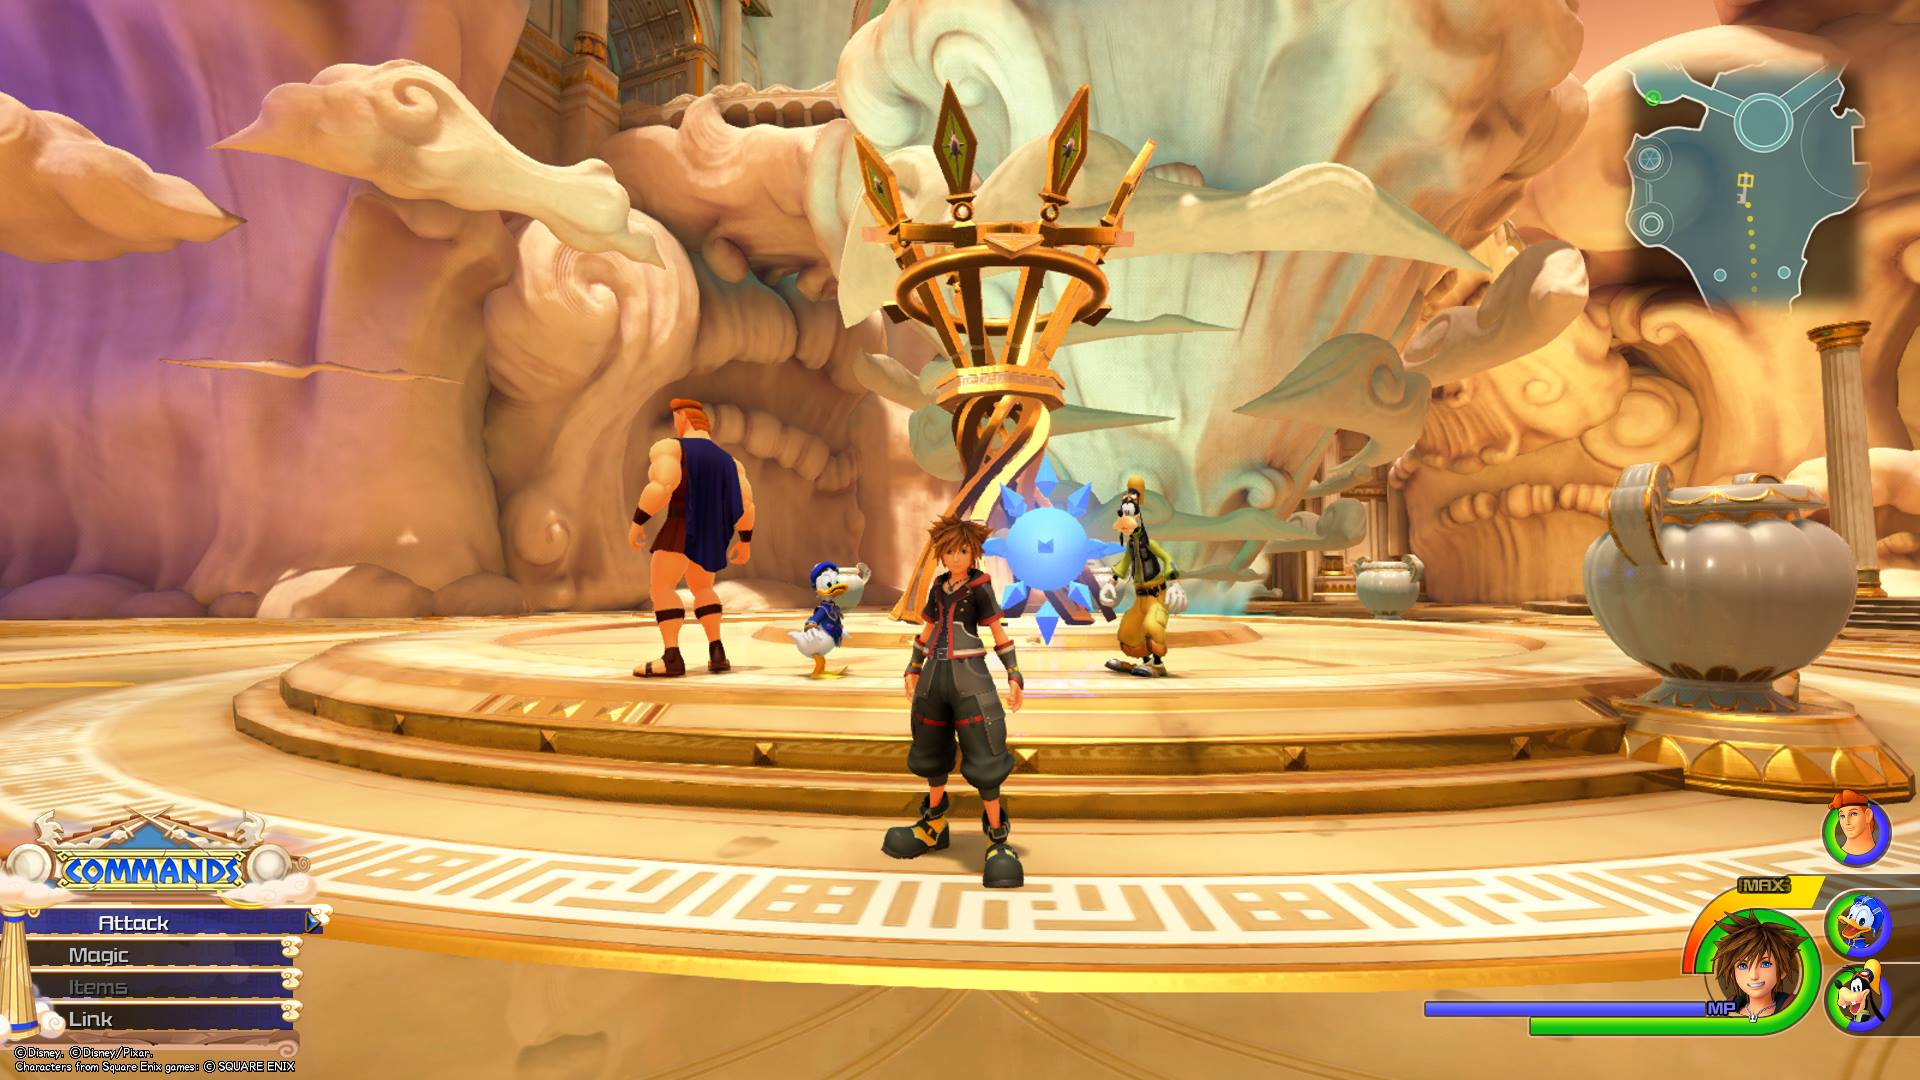 The first Battlegate in Kingdom Hearts 3 is located in the Summit area of Olympus.